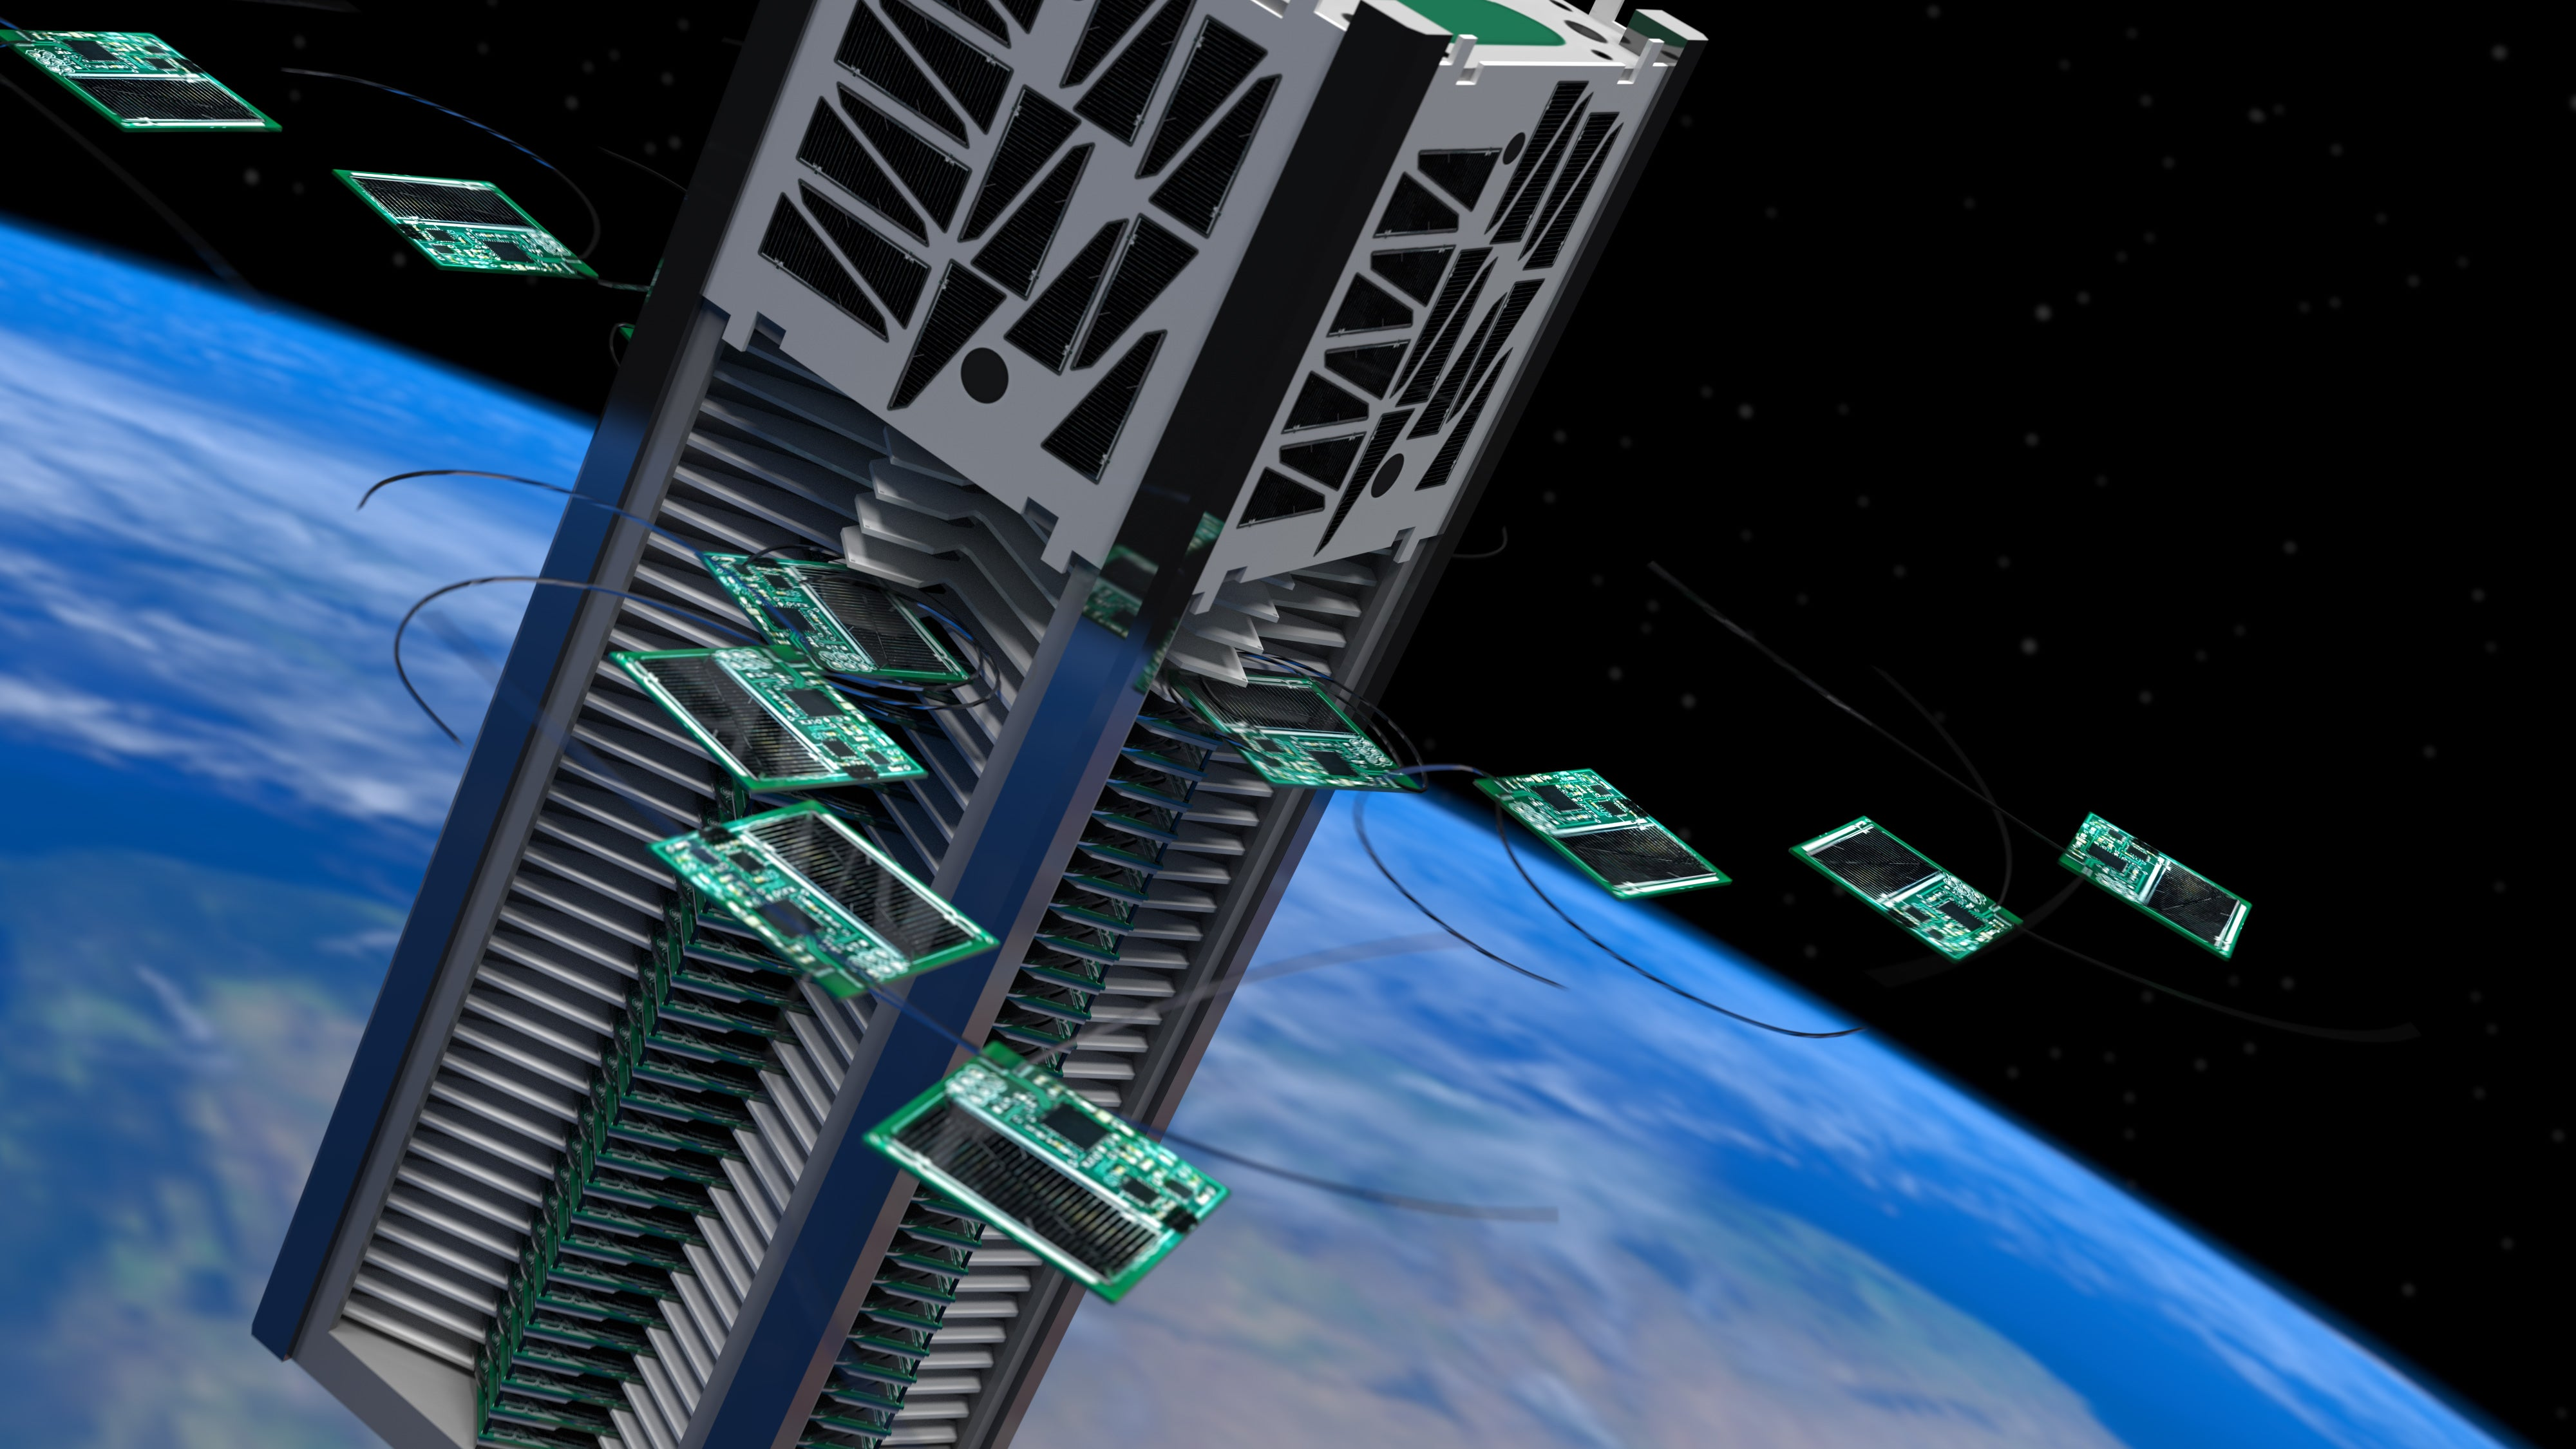 These Tiny Spacecraft Could Lead Us To Alpha Centauri